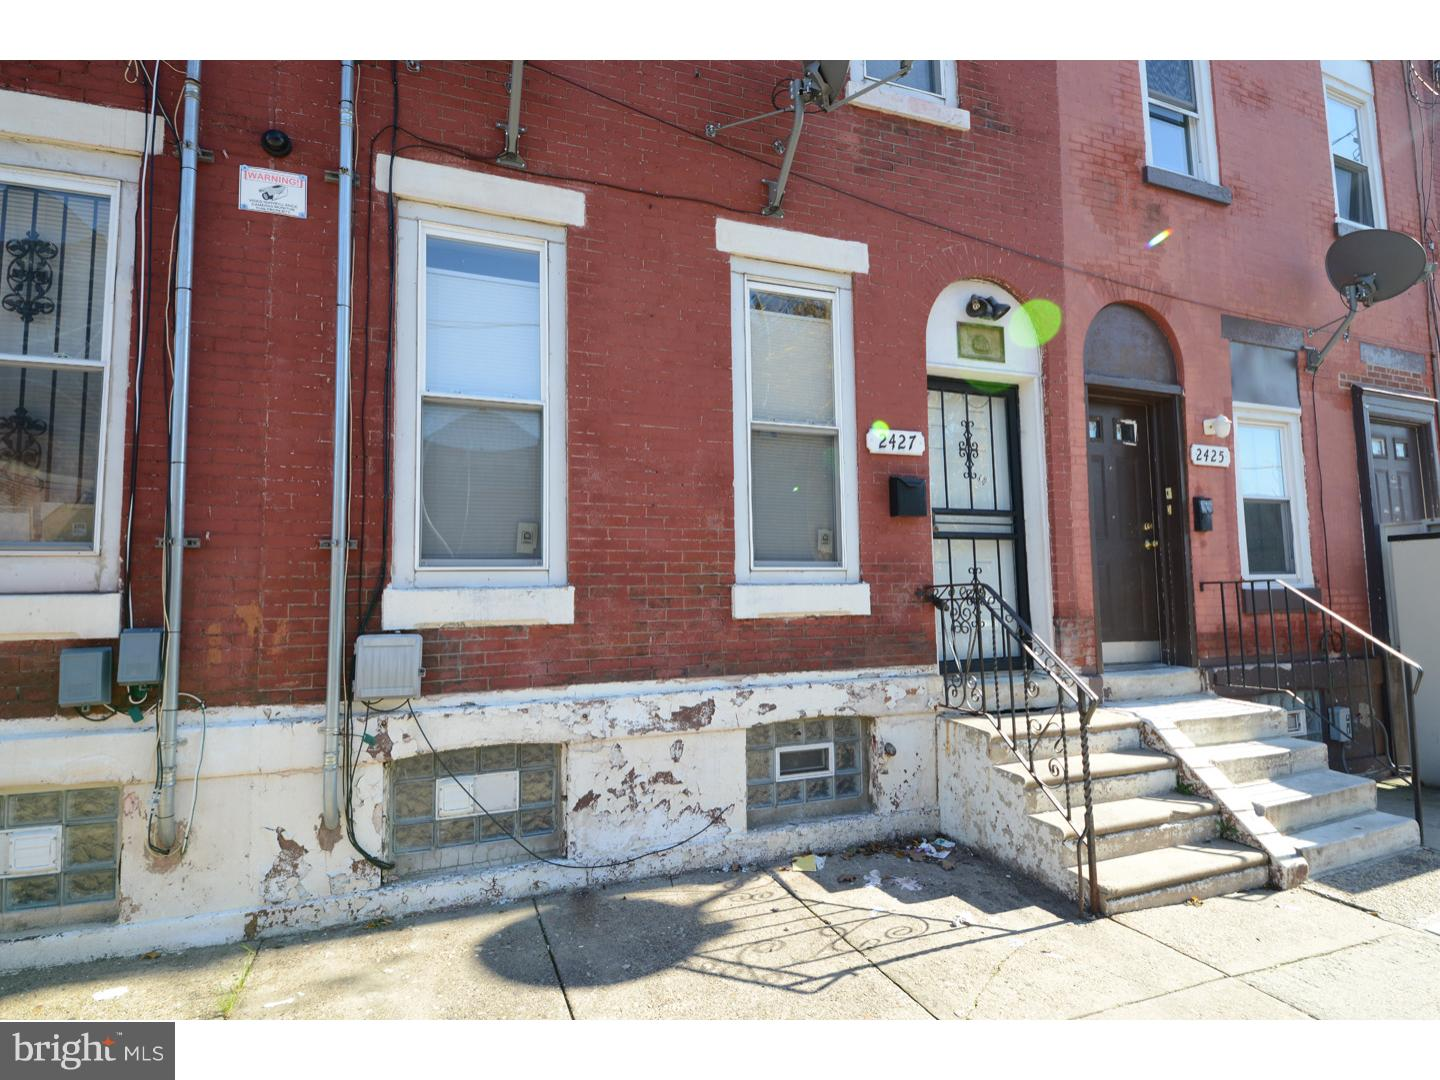 2427 N 10TH STREET, Philadelphia, PA 19133